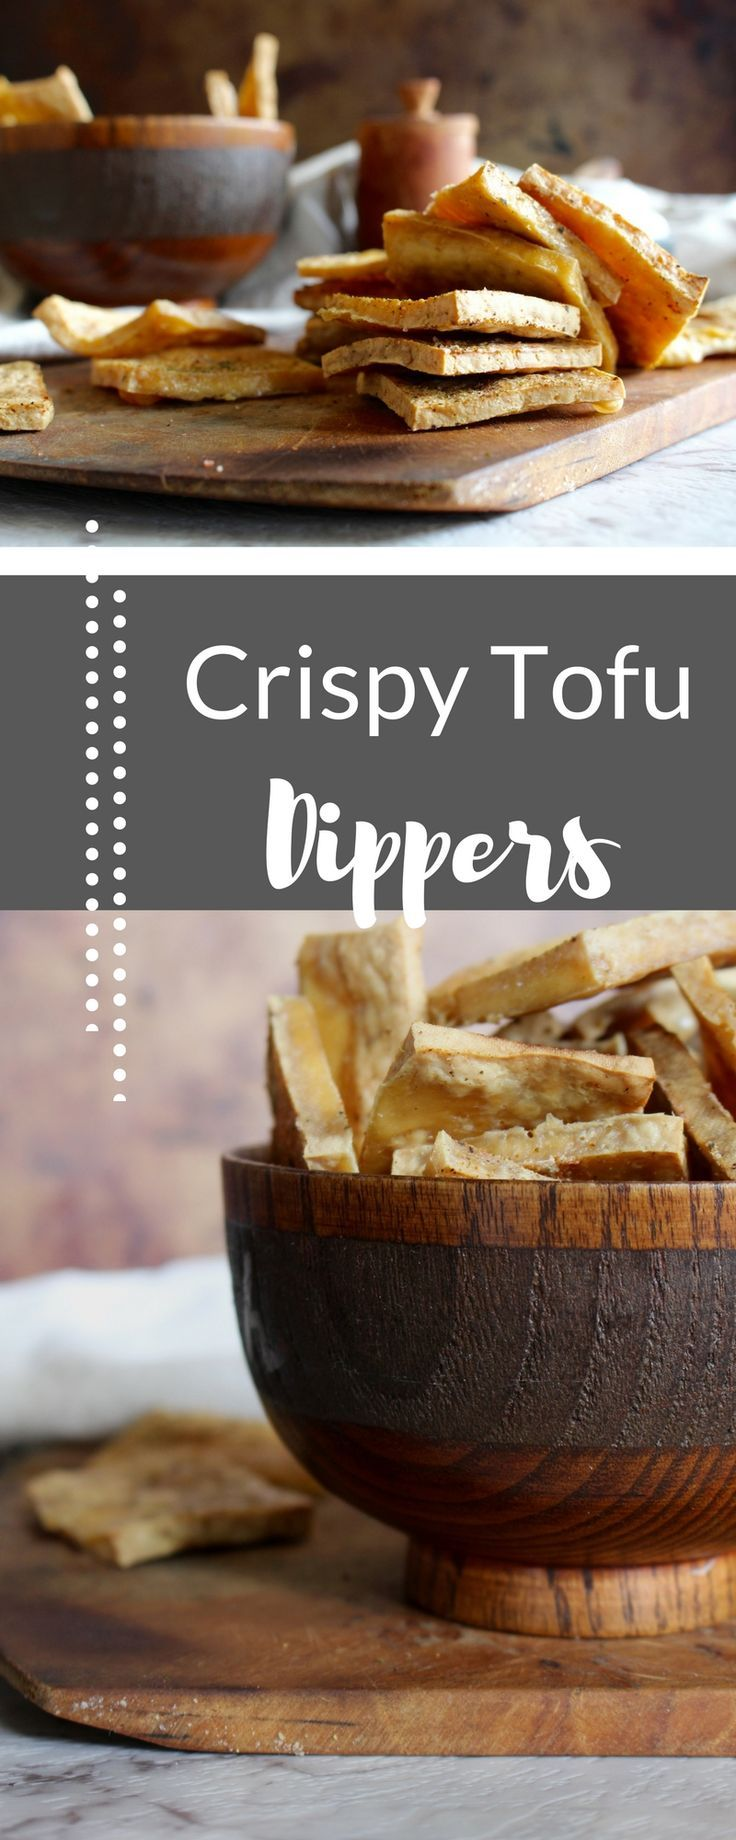 | crispy tofu | easy dinner | vegan protein | Once you have this crispy tofu, you'll never want it any other way, and all your bad tofu experiences will be forgotten. The recipe is super easy, with only 4 ingredients and pop it in the oven!